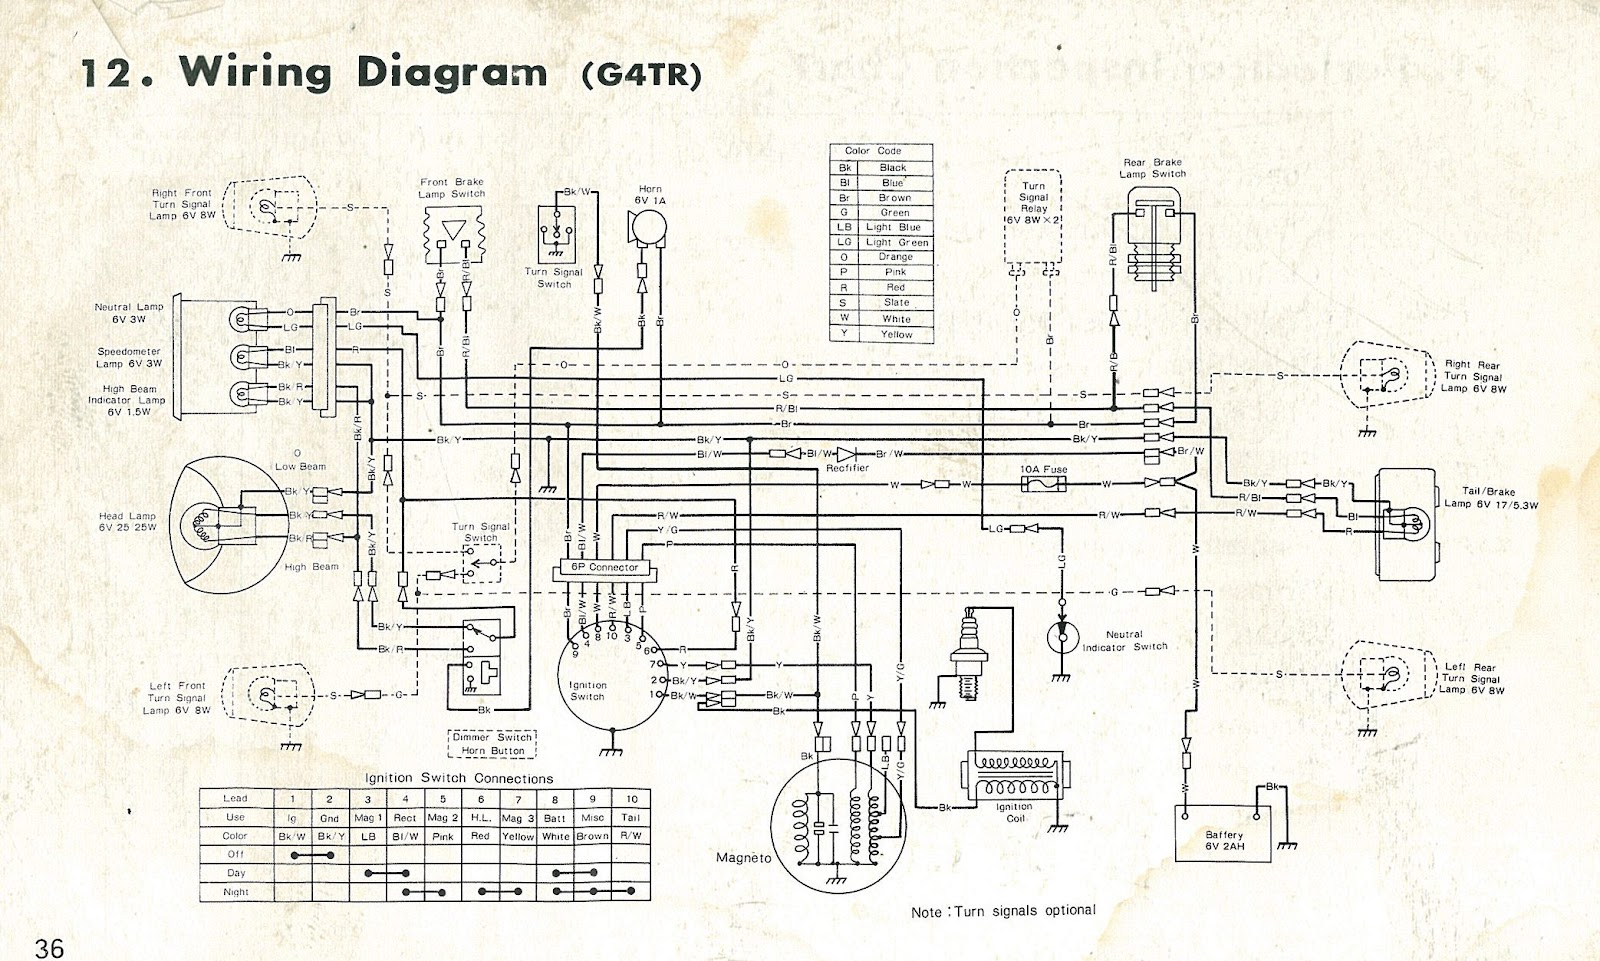 Kawasaki Hd Iii Wiring Diagram Reinvent Your 1995 Mule Restoring A 1972 G4 Tr B Motorcycle Rh Sebskawasaki Blogspot Com Diagrams Of Carburetors 95 750 Wire